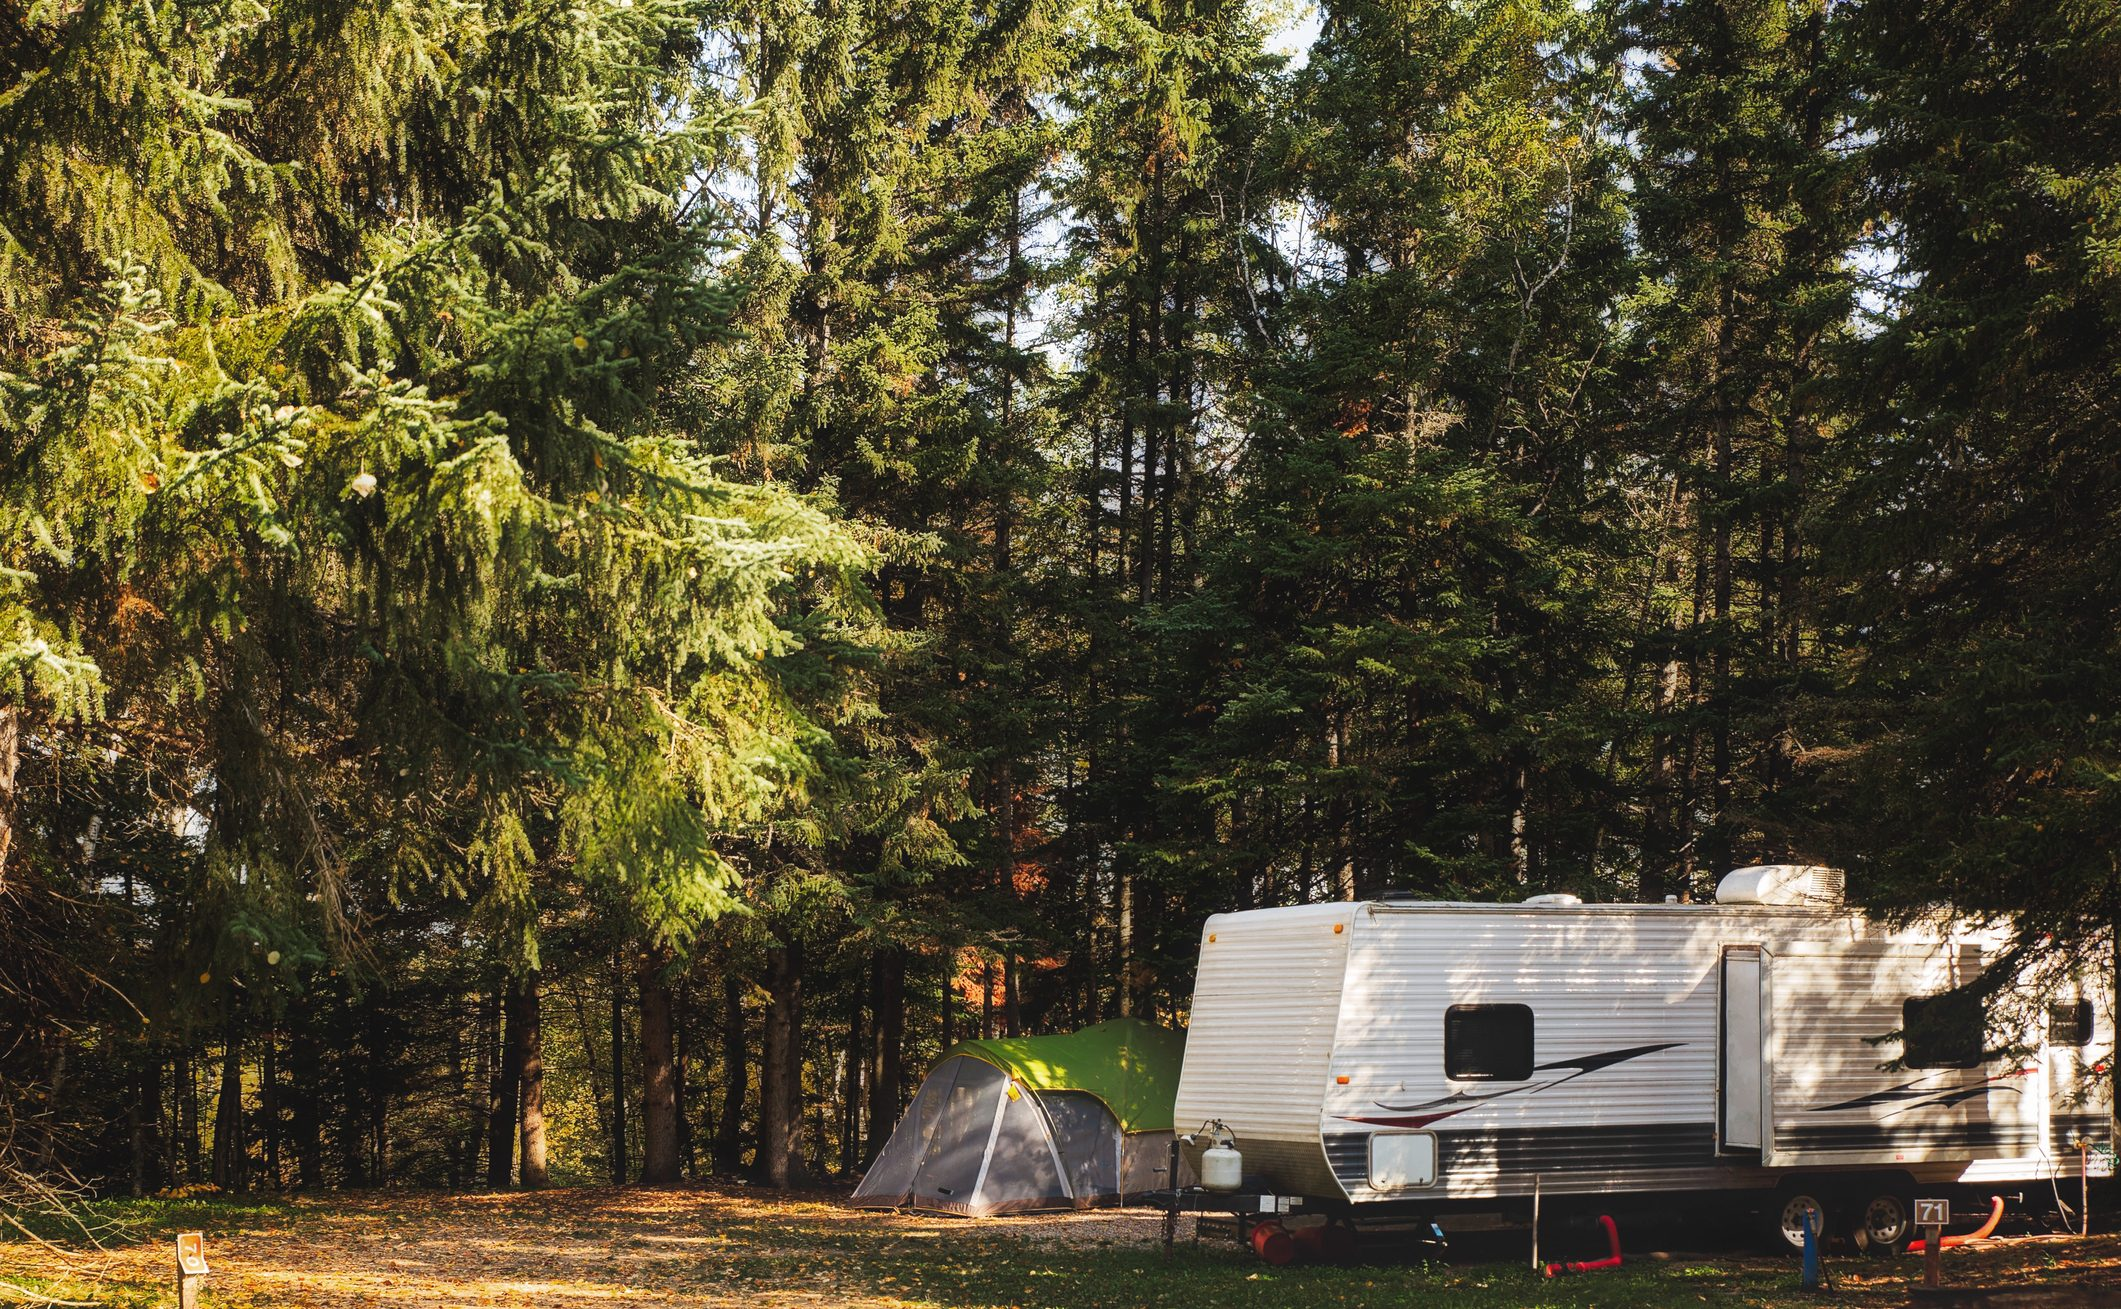 Travel Trailer parked under towering evergreen trees.